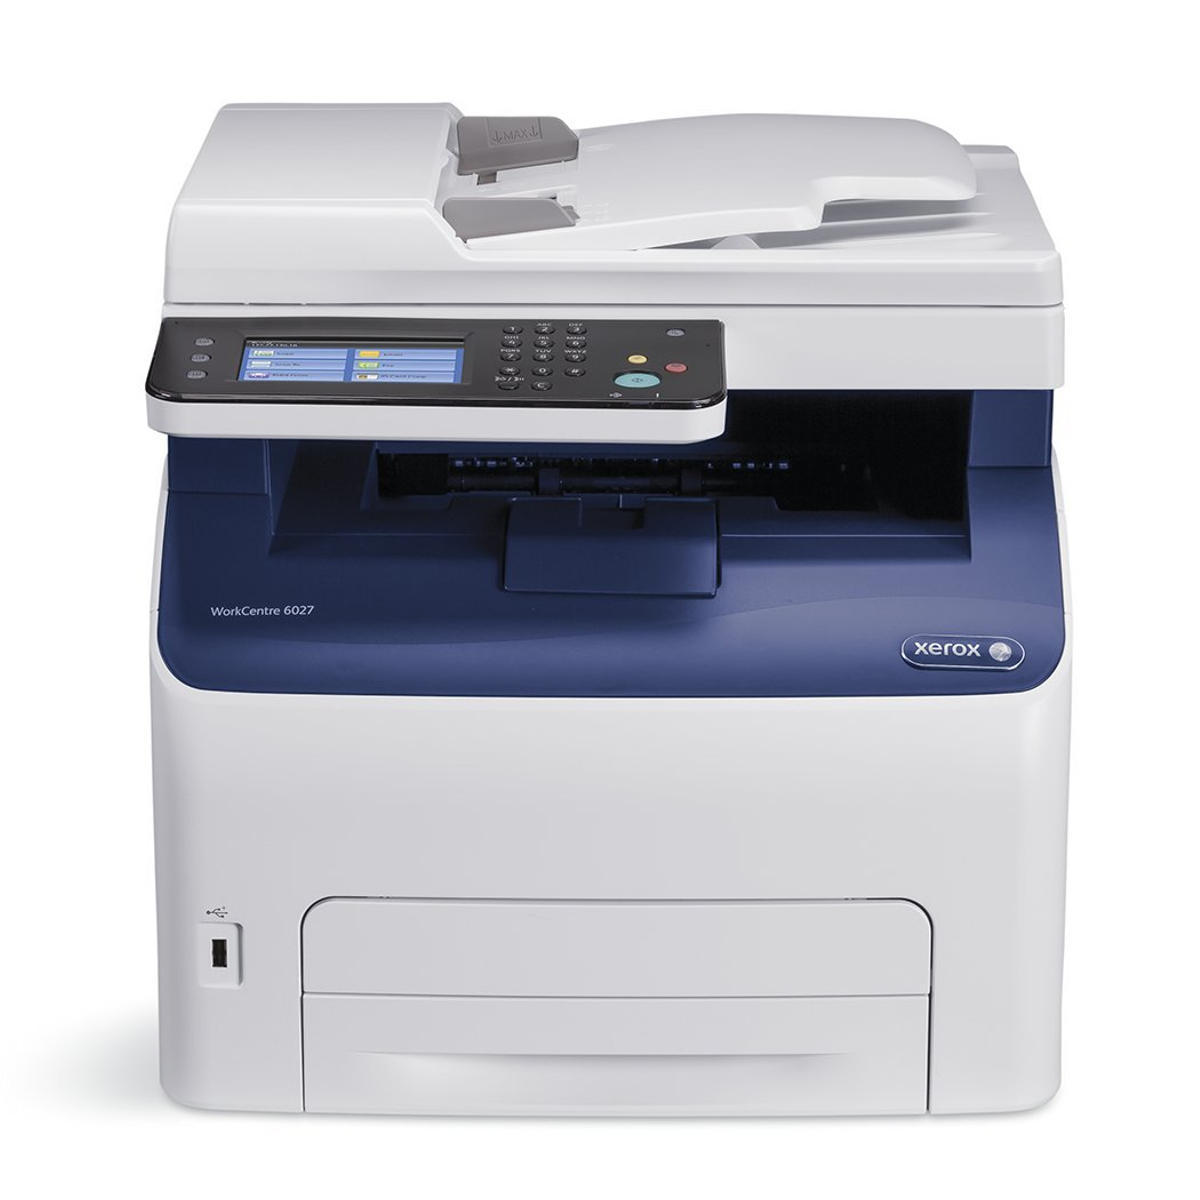 Xerox WorkCentre 6027/NI All-In-One Colour LED Laser Printer (WorkCentre 6027)